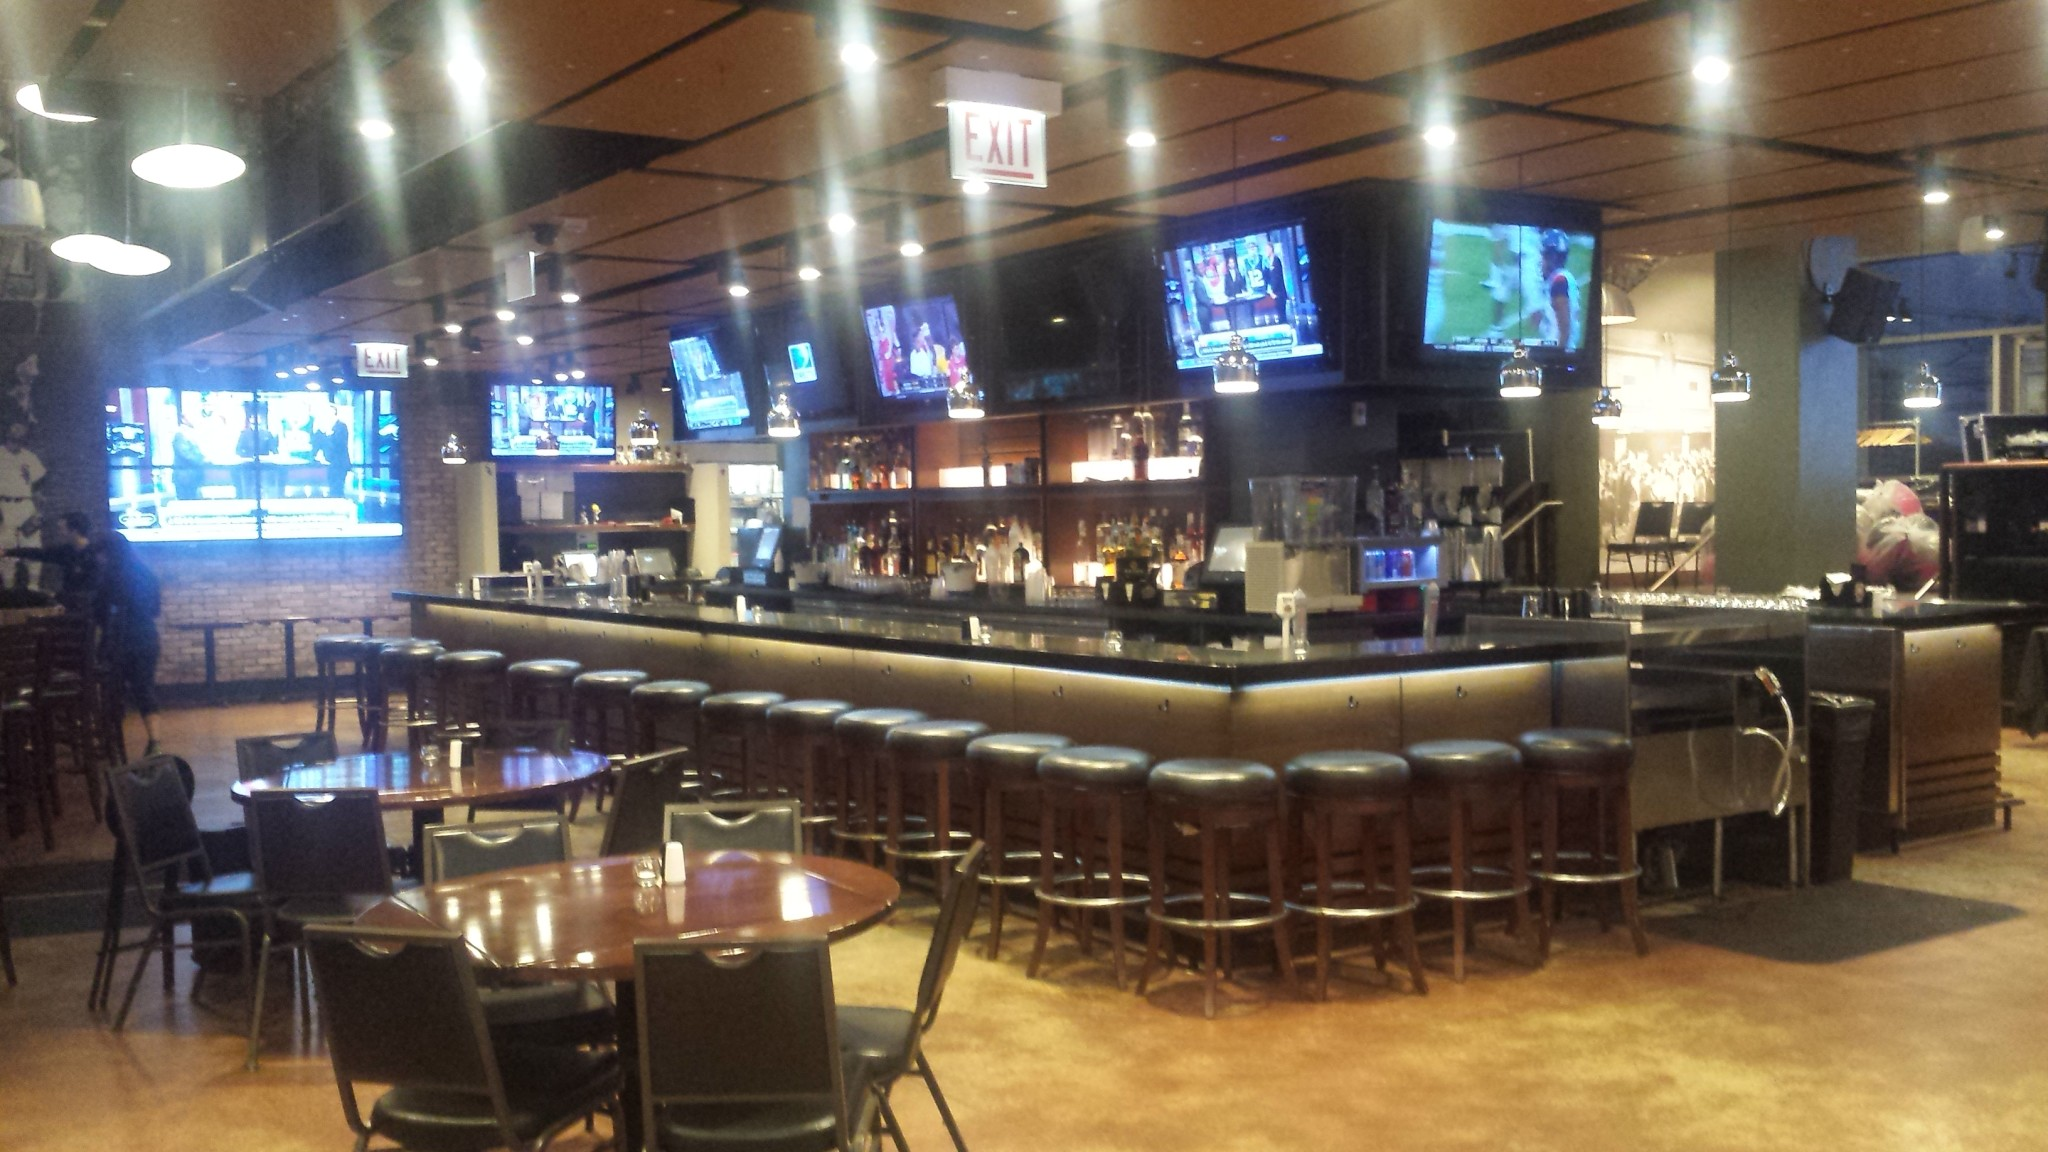 Chisox bar and grill felix and fingers dueling pianos - Restaurant bar and grill ...